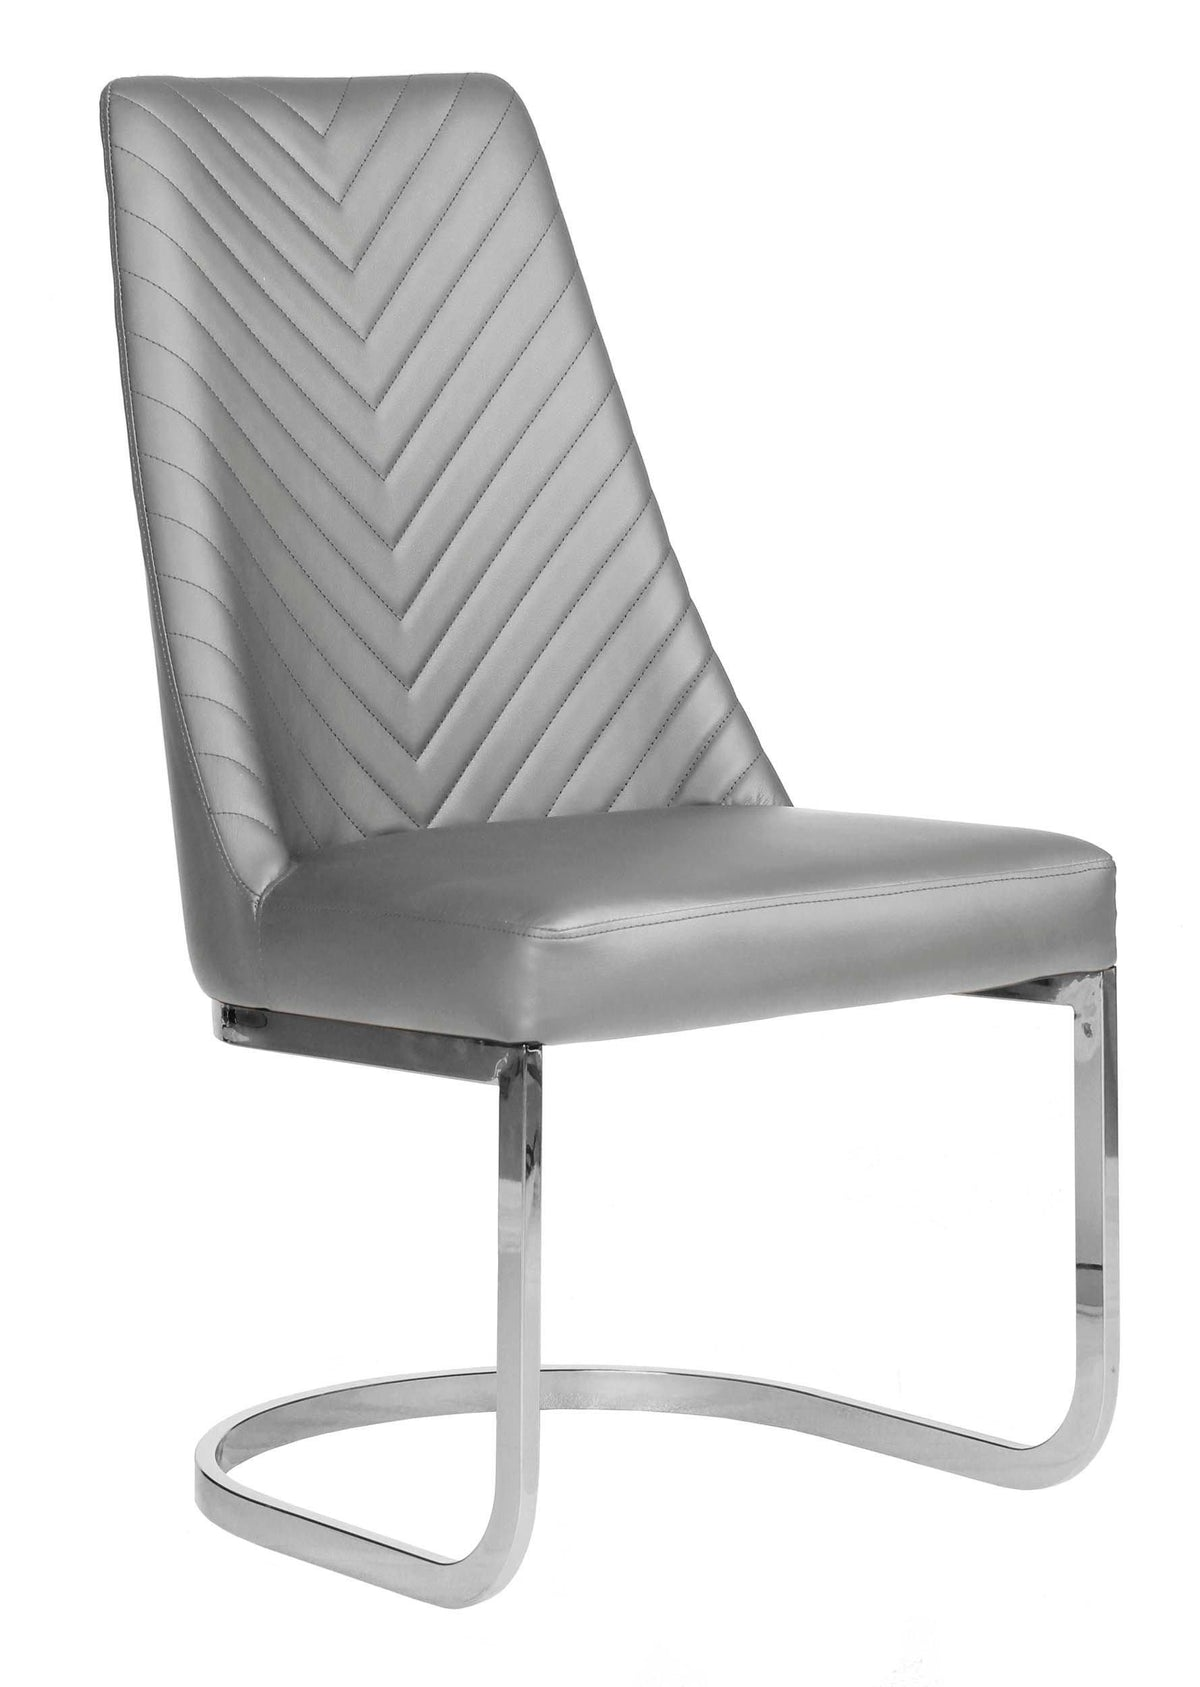 Whale Spa - Customer Chair with Diamond or Chevron Pattern - Superb Nail Supply